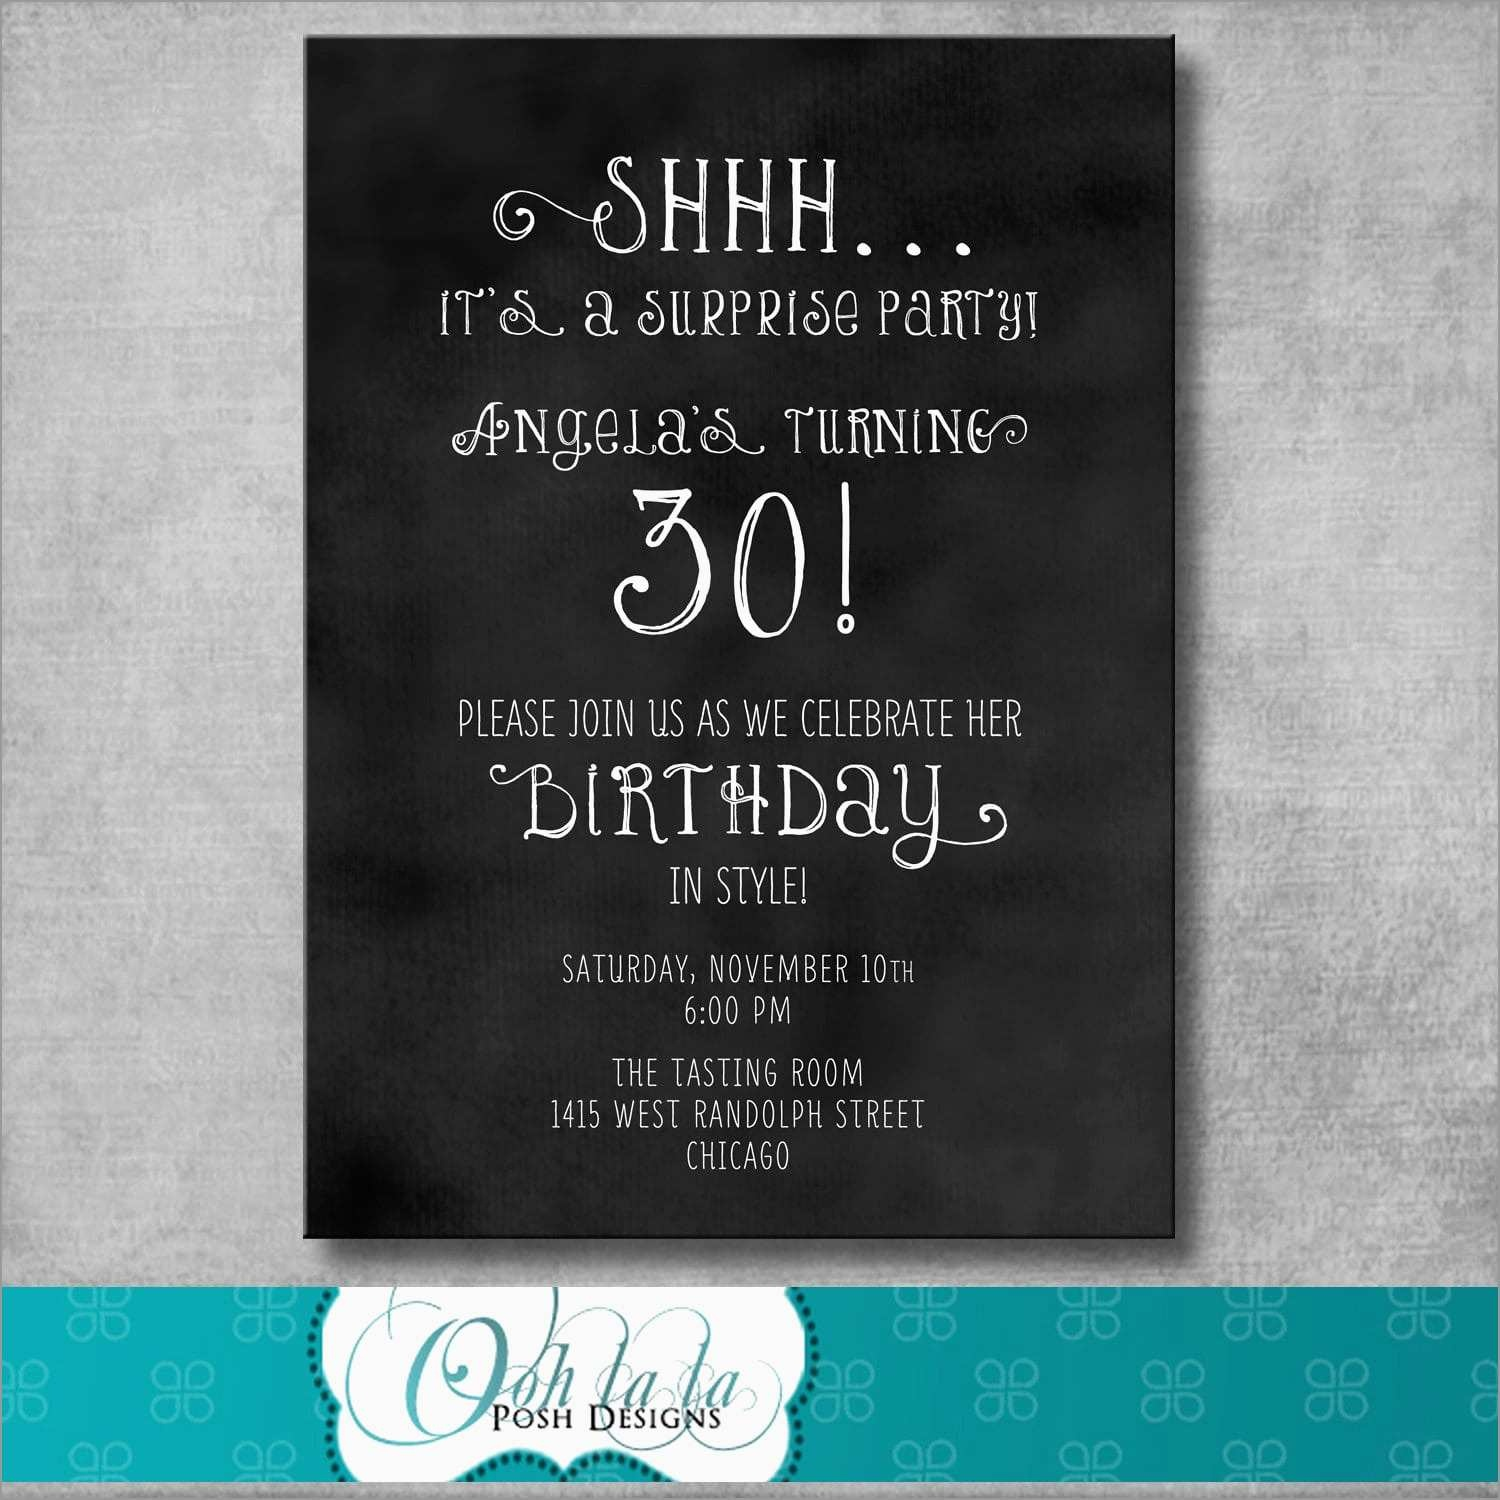 Awesome Surprise Invitation Templates Free | Best Of Template - Free Printable Surprise Party Invitation Templates